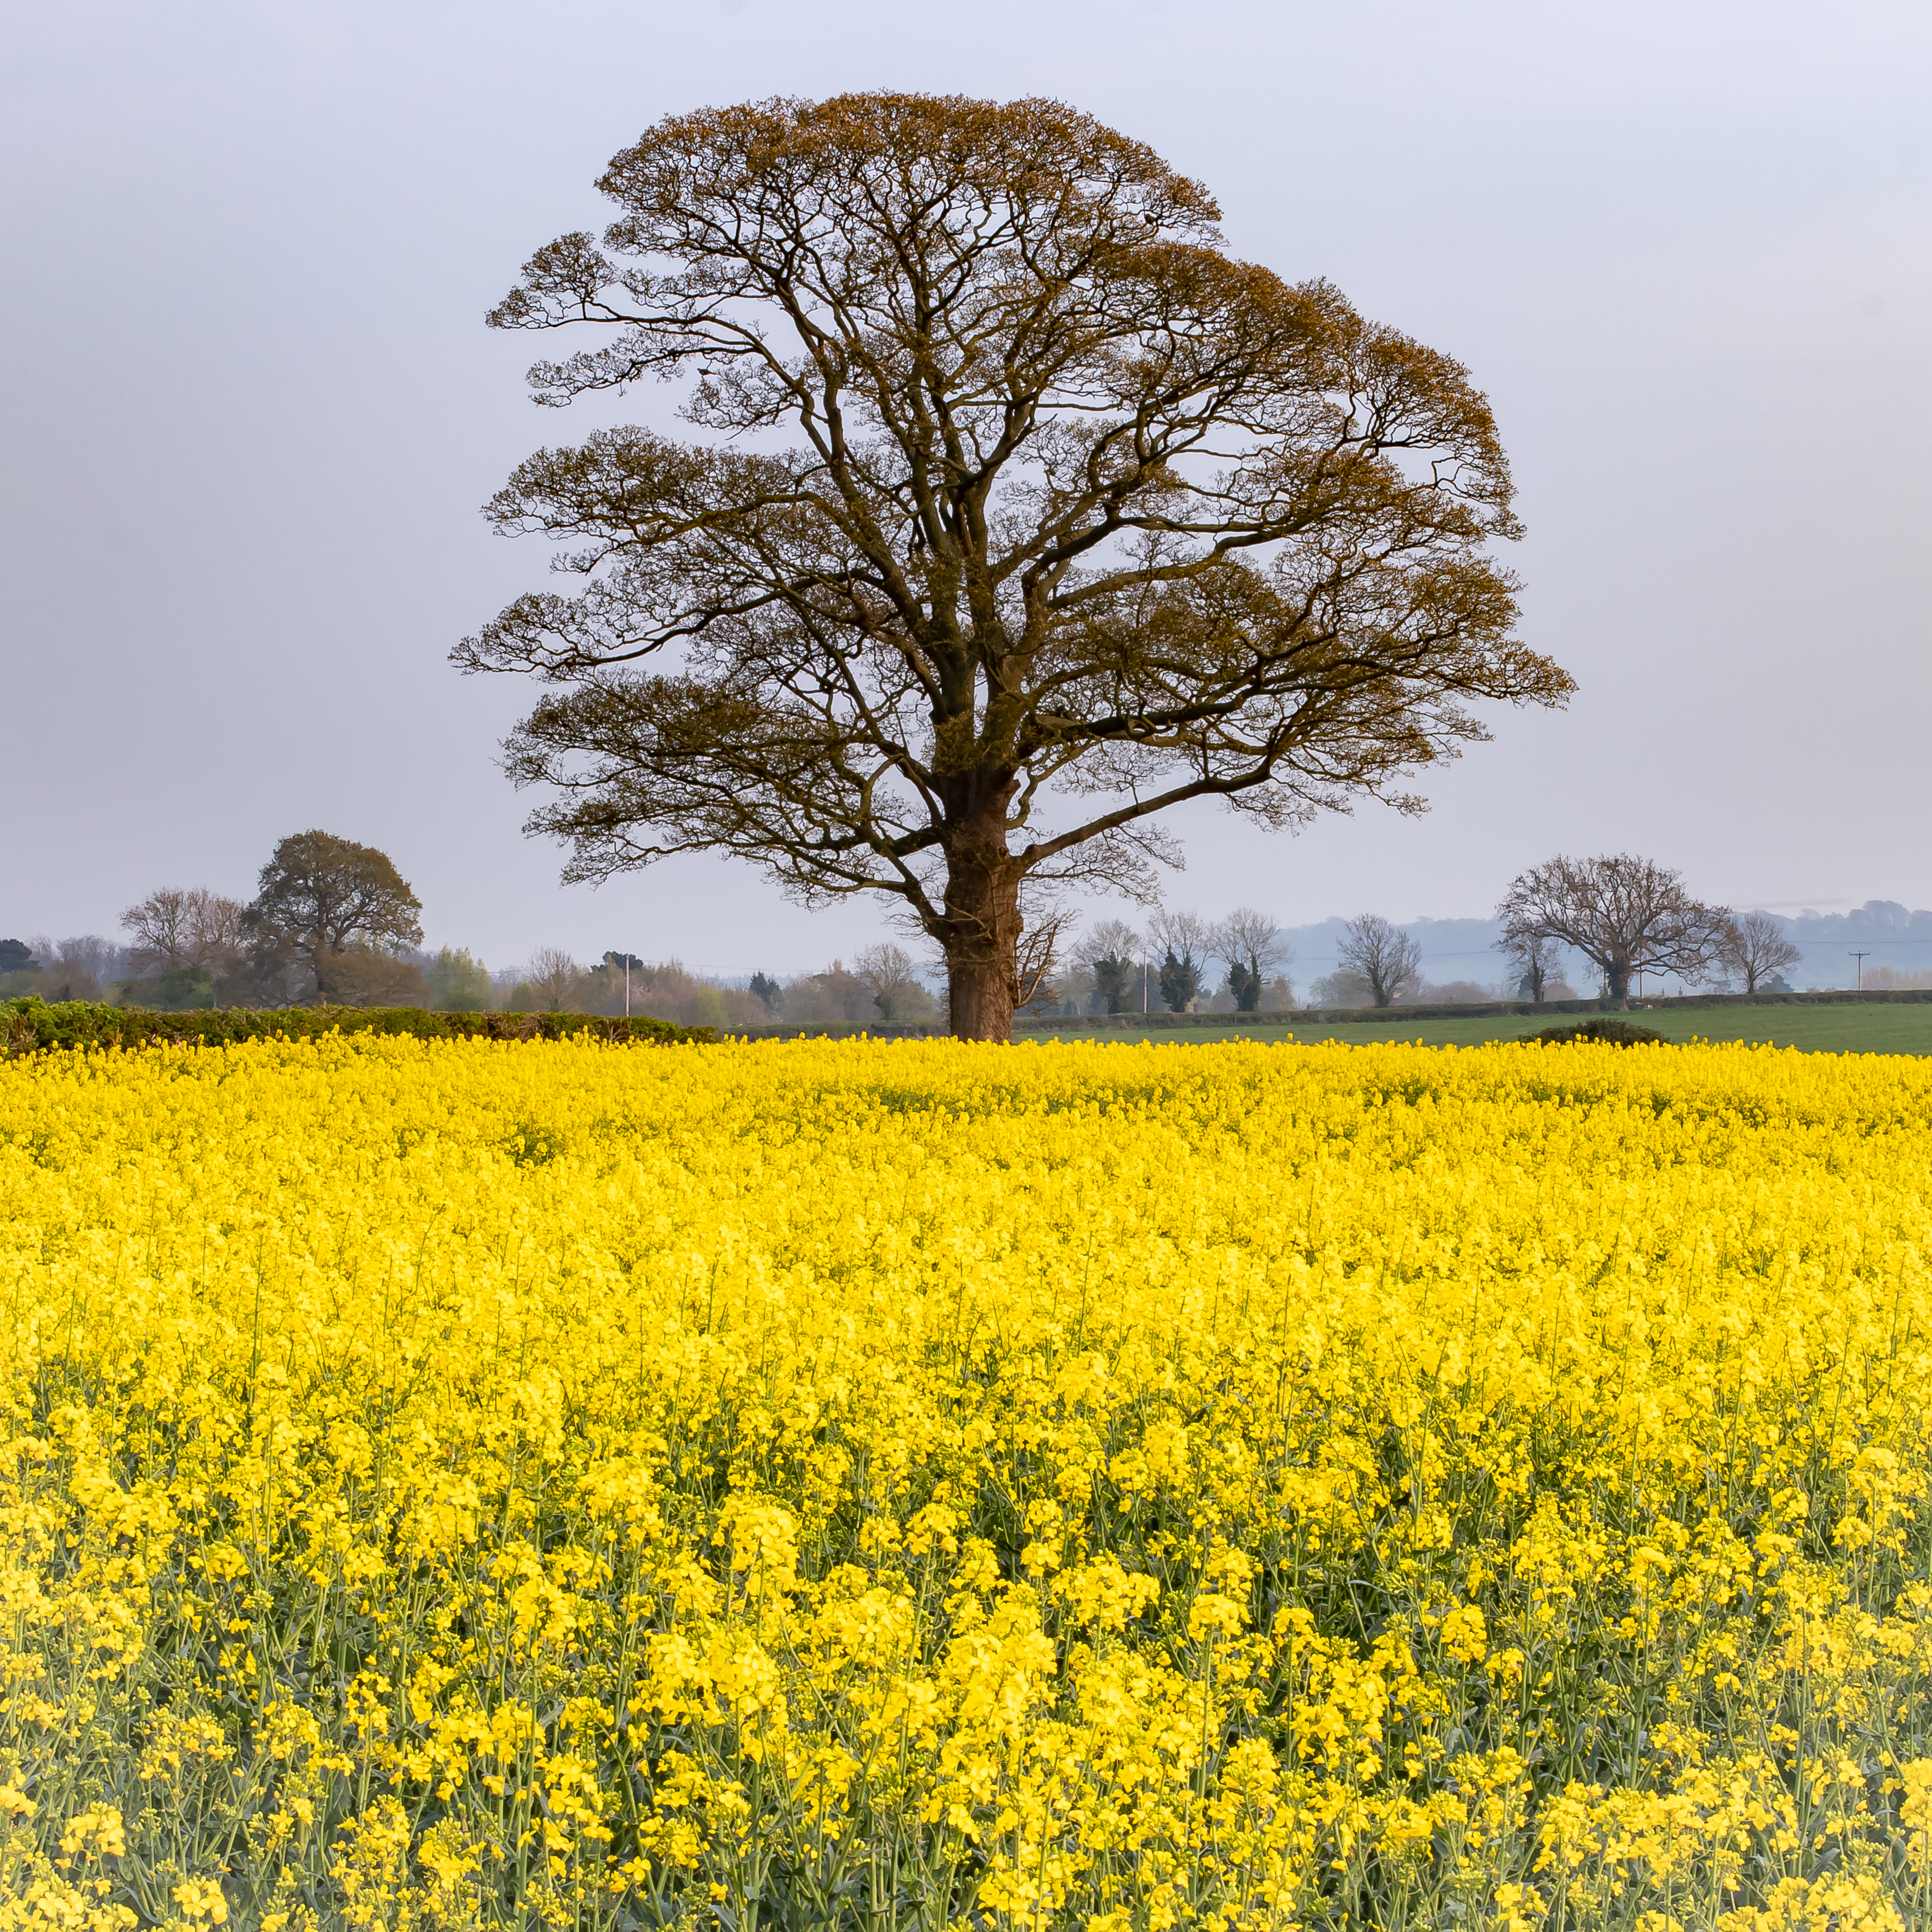 Field of Rape Oil Seed Derbyshire-1.jpg